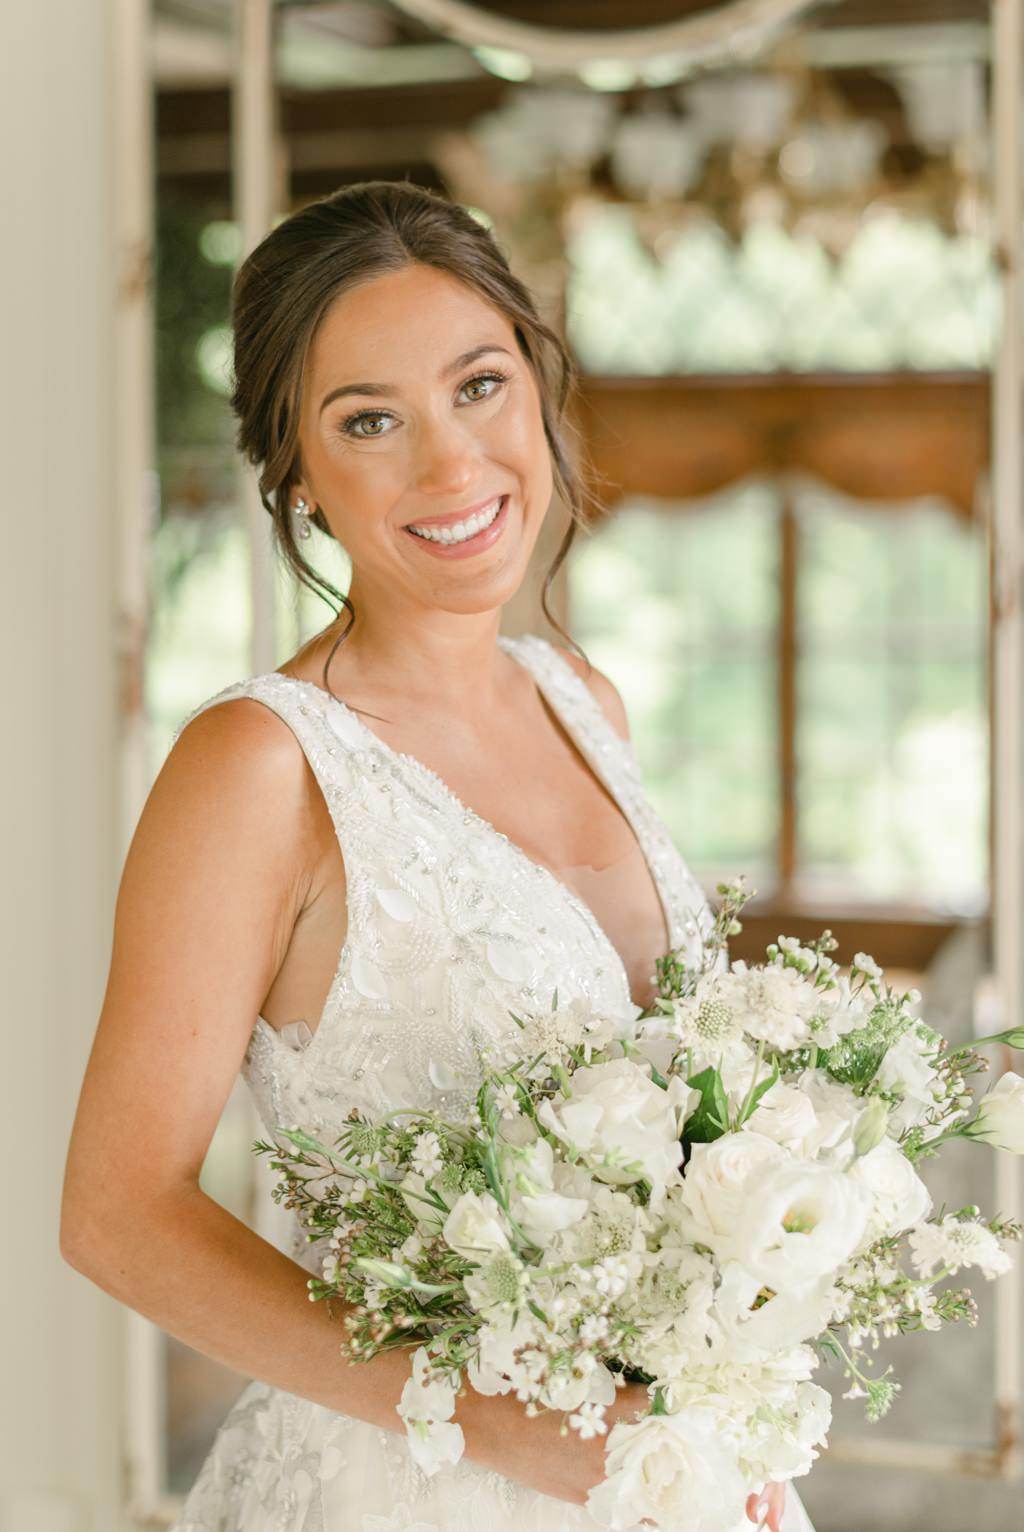 A bride smiling just before her Moonstone Manor wedding.